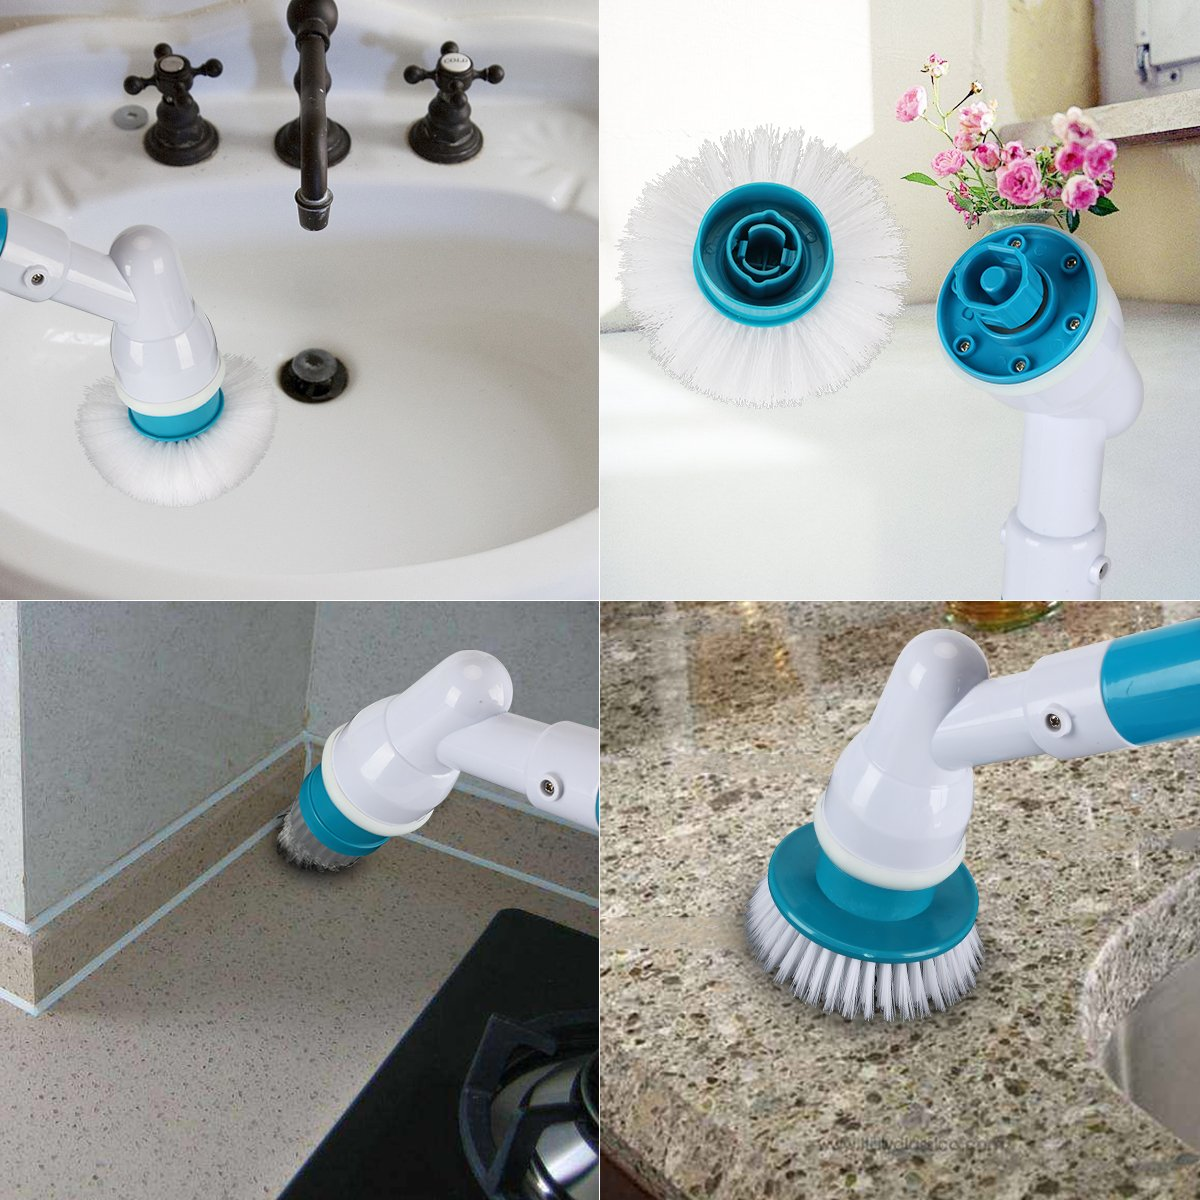 Home Kitty Electric Spin Scrubber,Cordless Tub and Tile Scrubber with 3 Replaceable Cleaning Scrubber Brush Heads with Extension Handle for Bathroom Floor,Tiled Wall,Bathtub and Kitchen